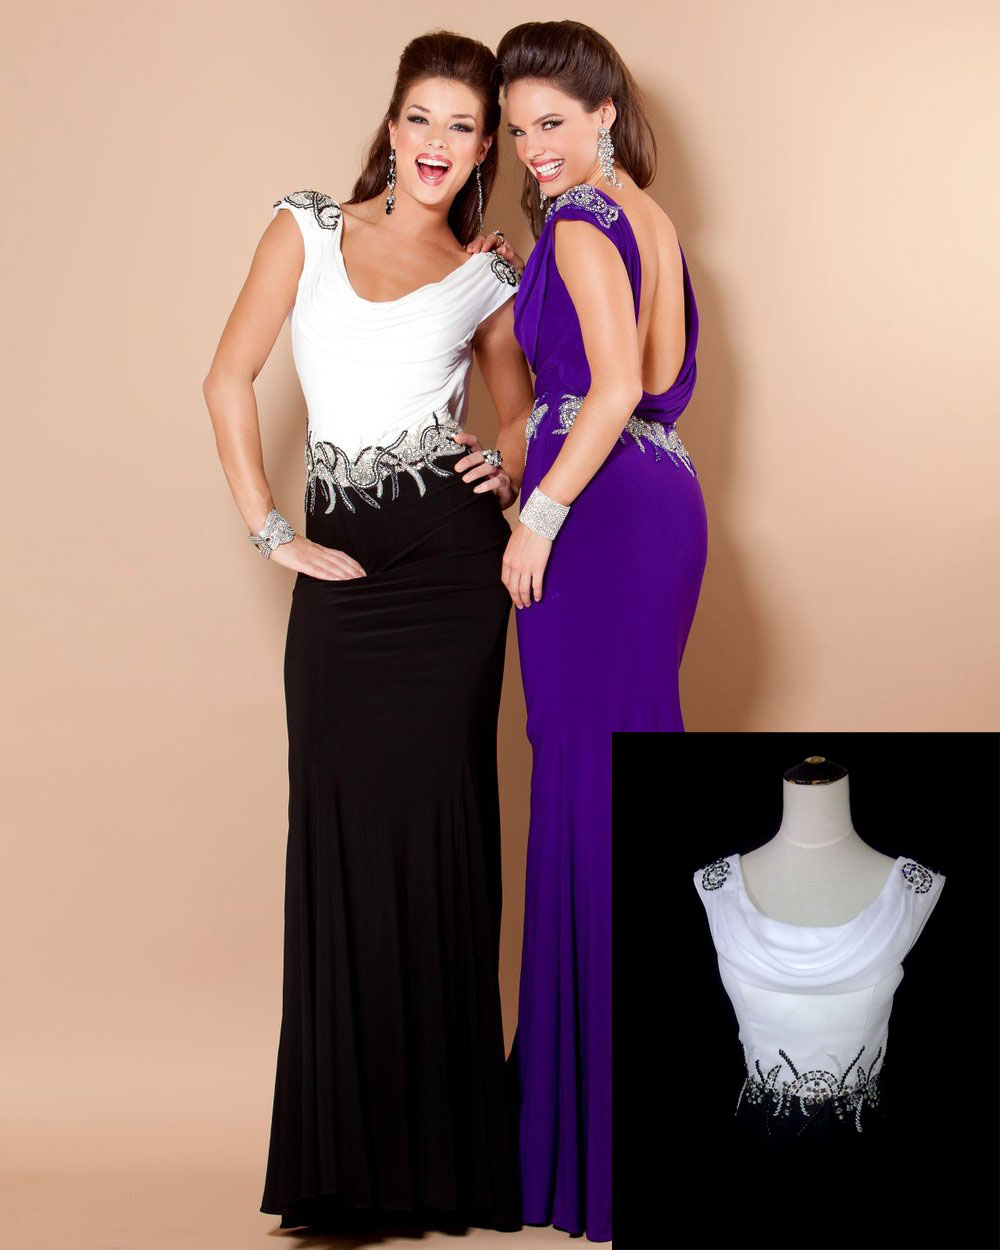 Custom made backless evening dresses cocktail night dress prom plus size celebrity formal - Wedding Online store